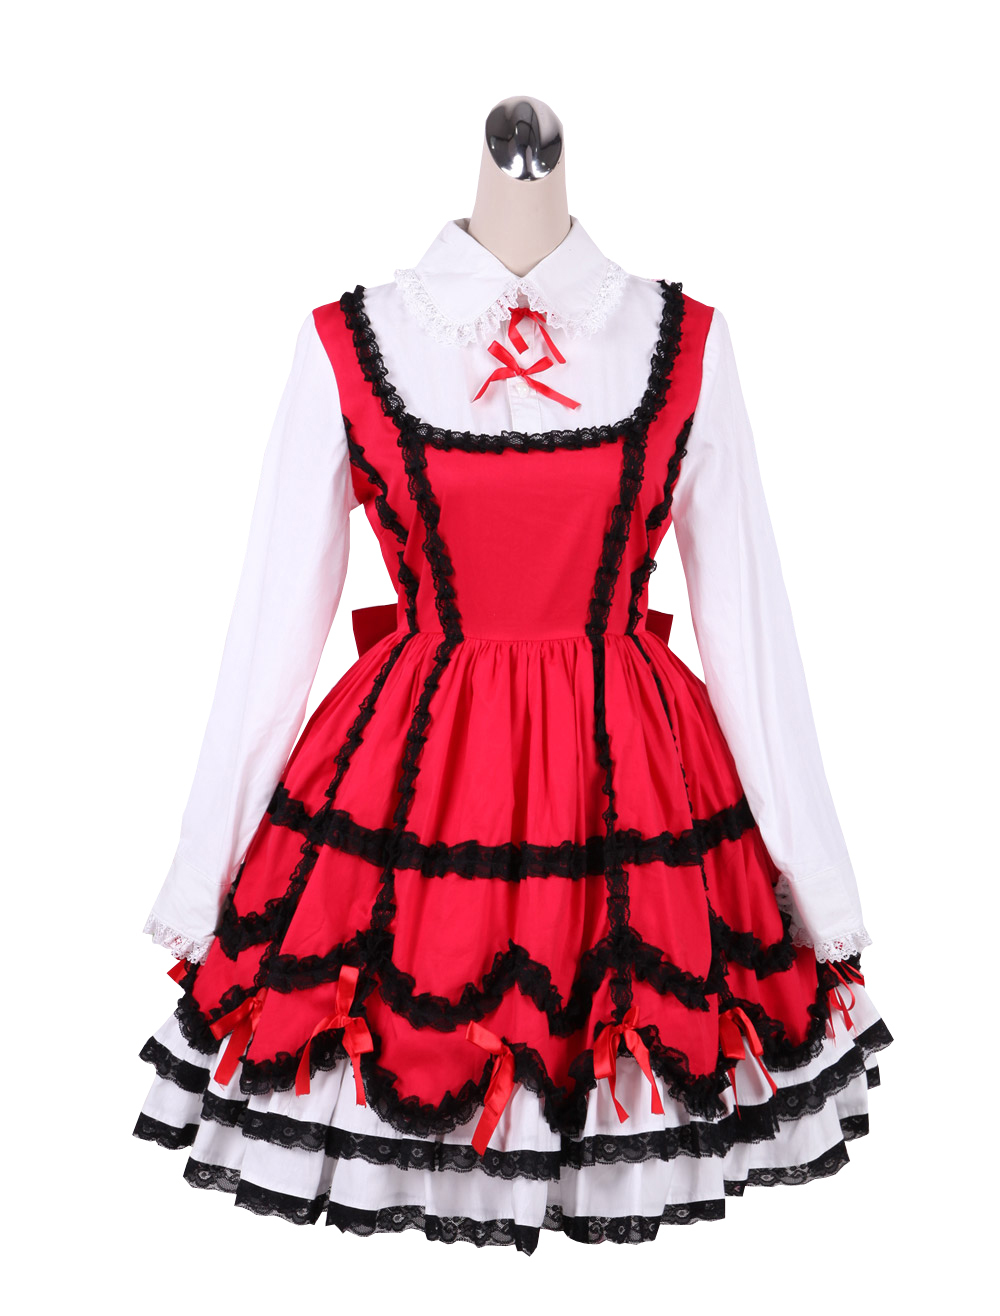 Primary image for ZeroMart Red Cotton Black Lace Ruffles Vintage Gothic Classic Lolita Dress